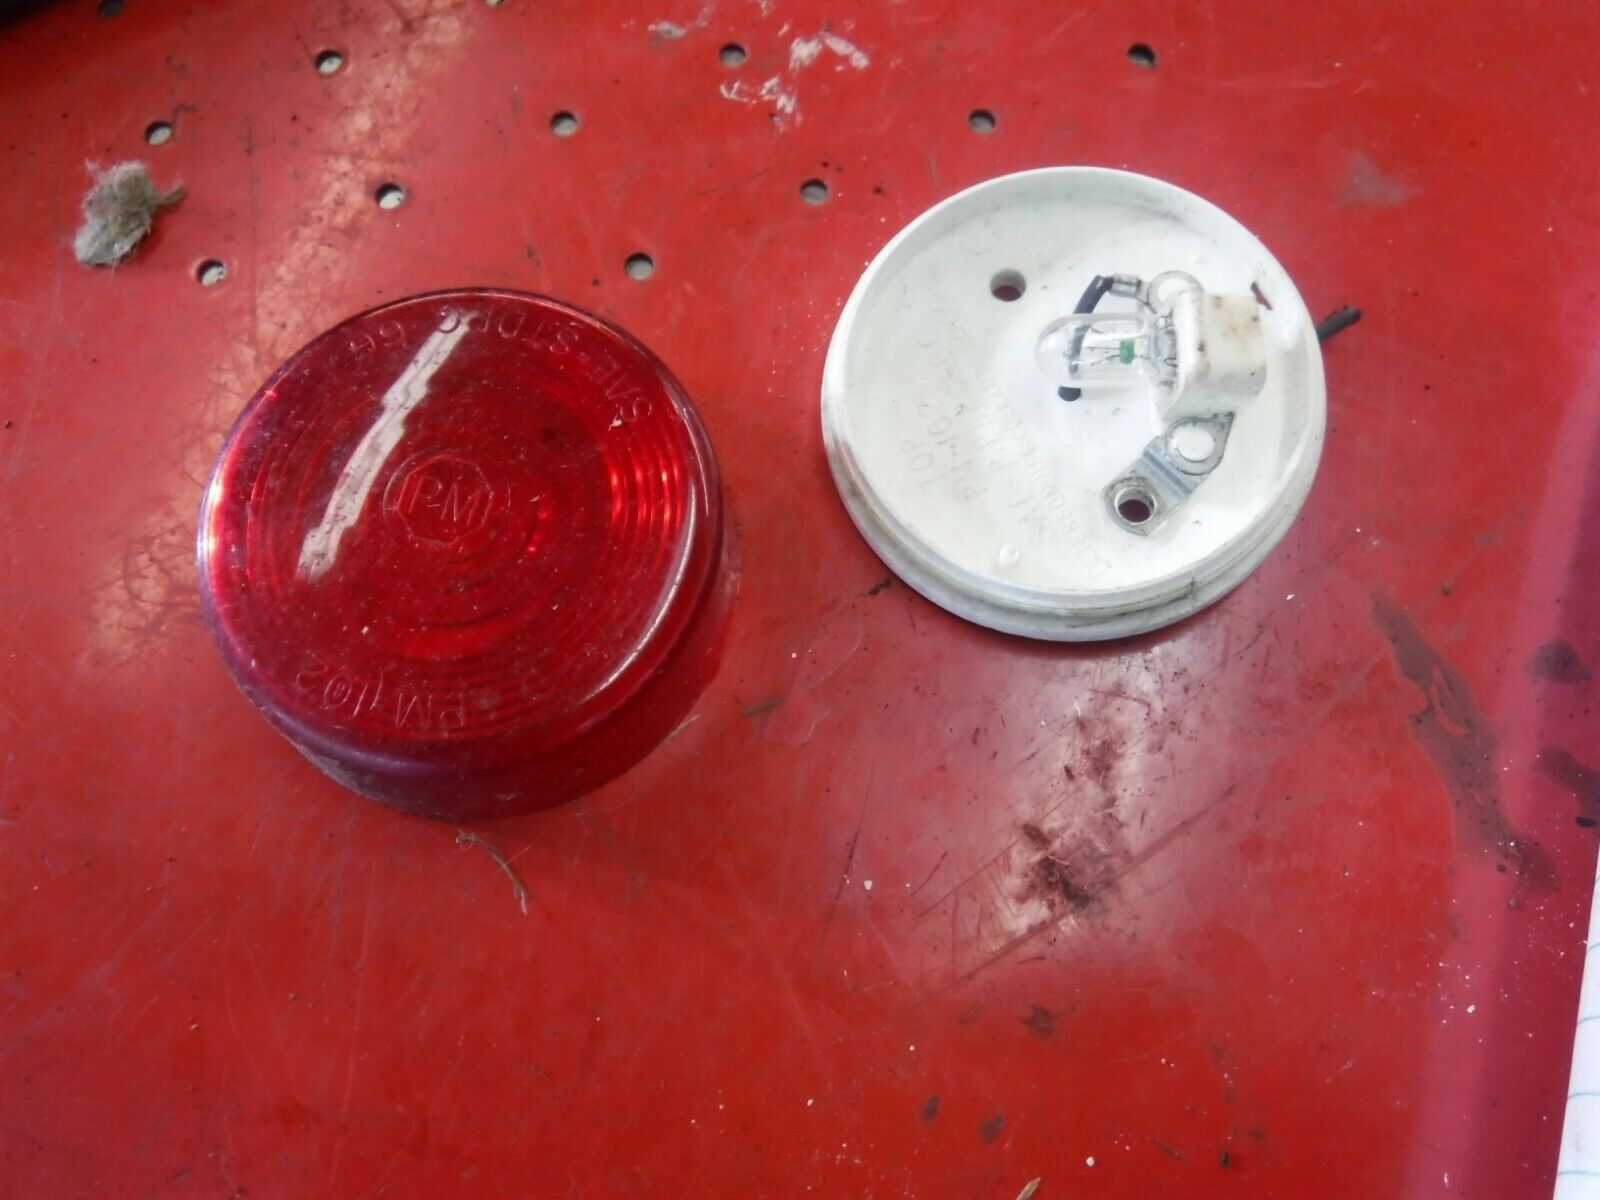 1970 Arctic Cat 340 PANTHER snowmobile parts: ONE TAILLIGHT ASSEMBLY